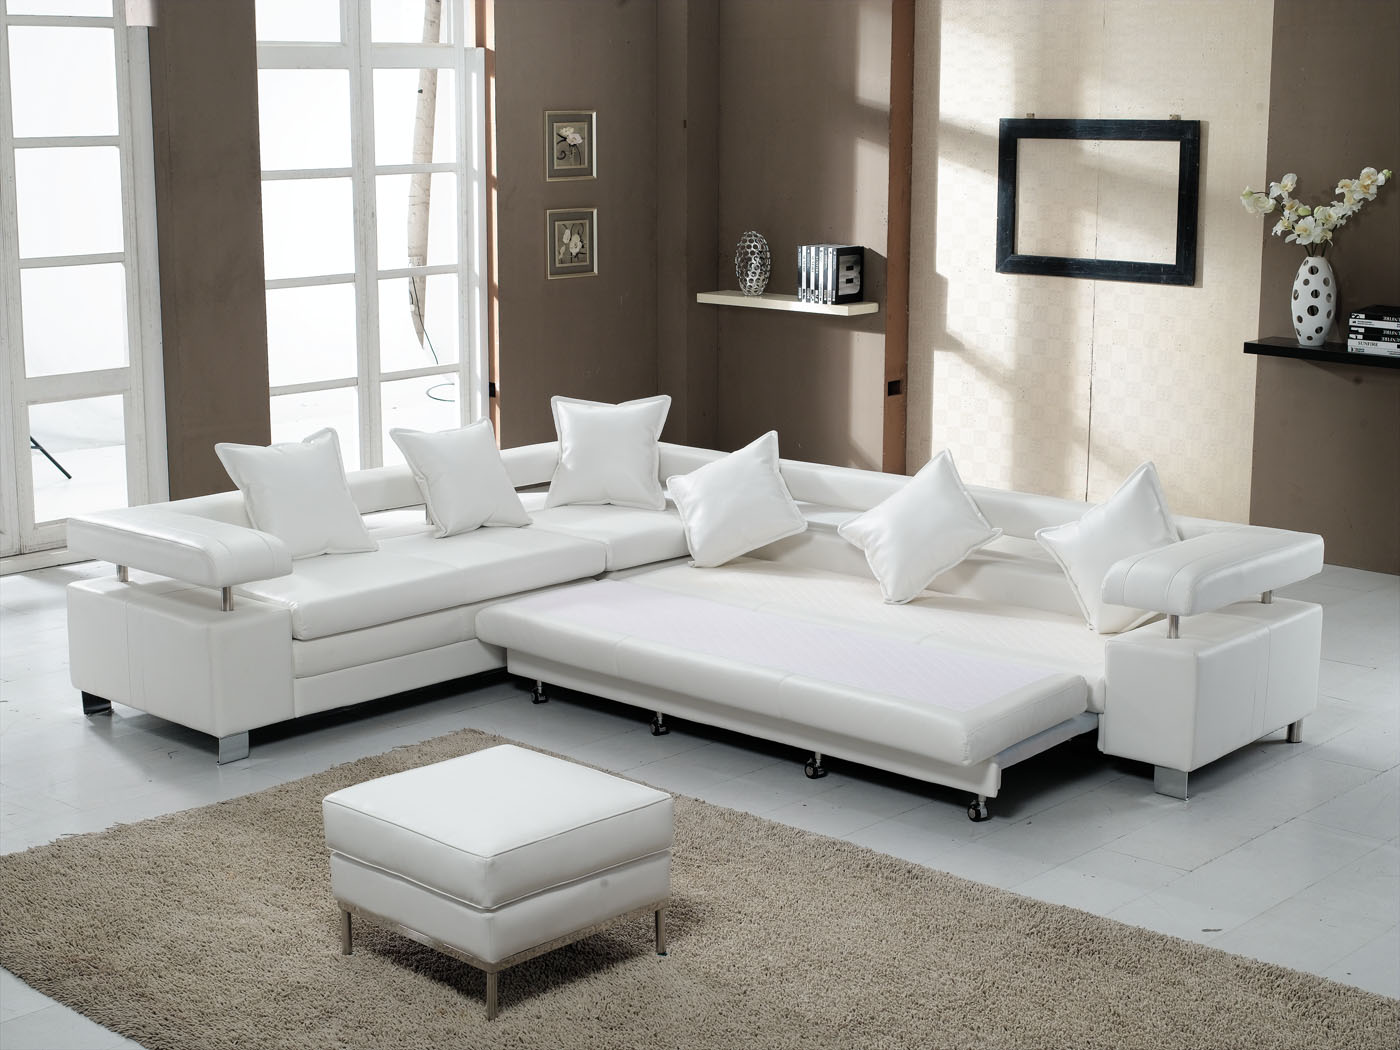 Apartment size sleeper sofa design homesfeed - Apartment size living room furniture ...